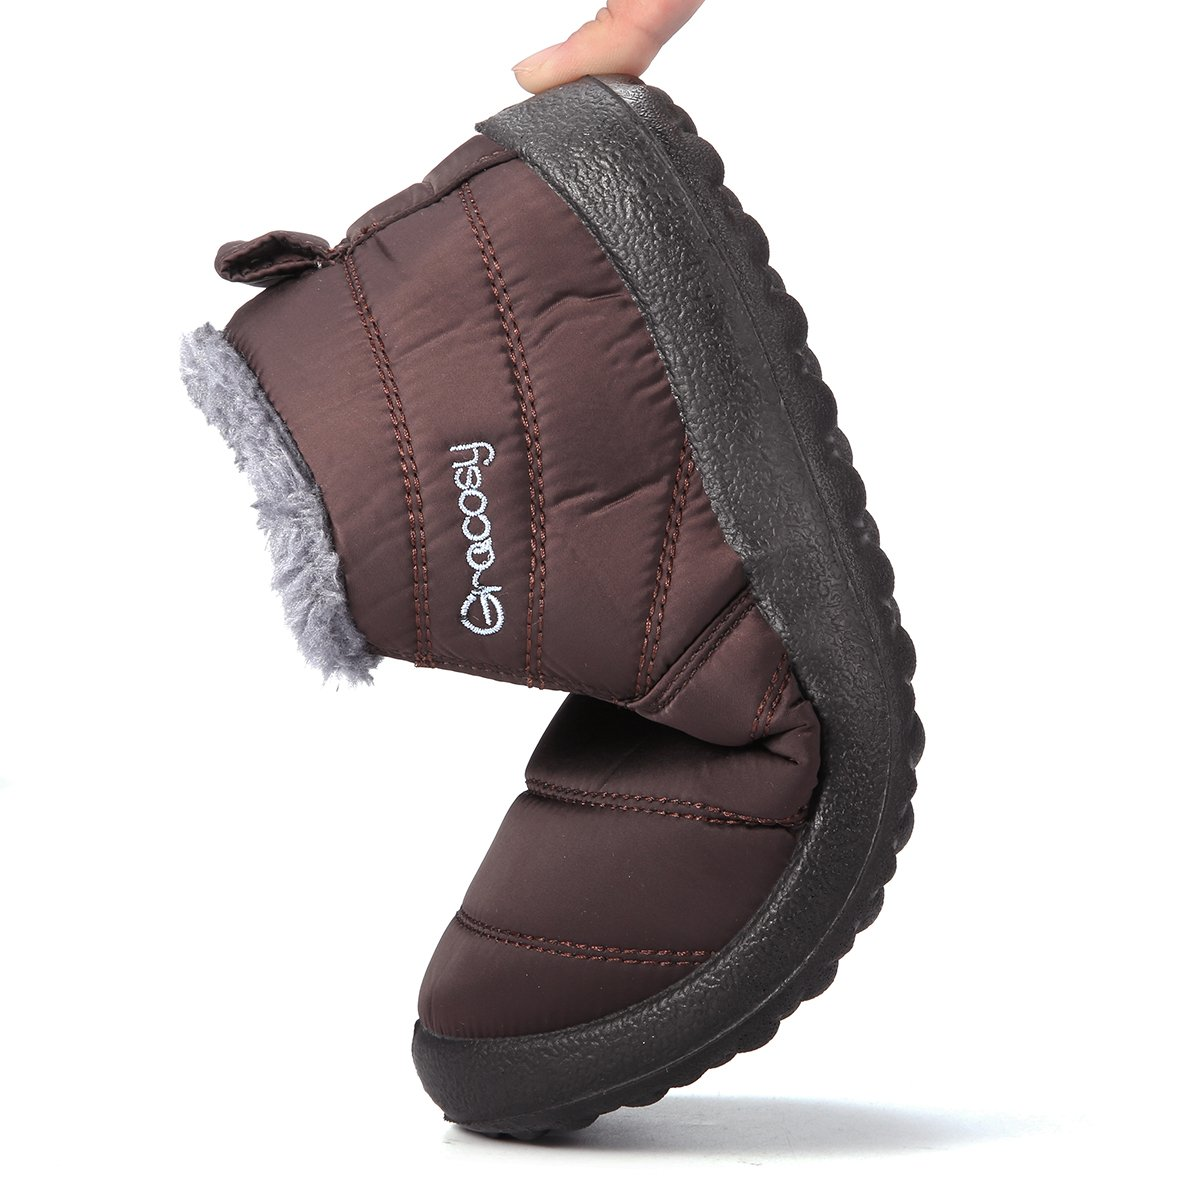 0d79507dd576e ... gracosy Women Snow Boots Winter Warm Fur Ankle Lining Slip On Flat  Ankle Fur Shoes Anti ...